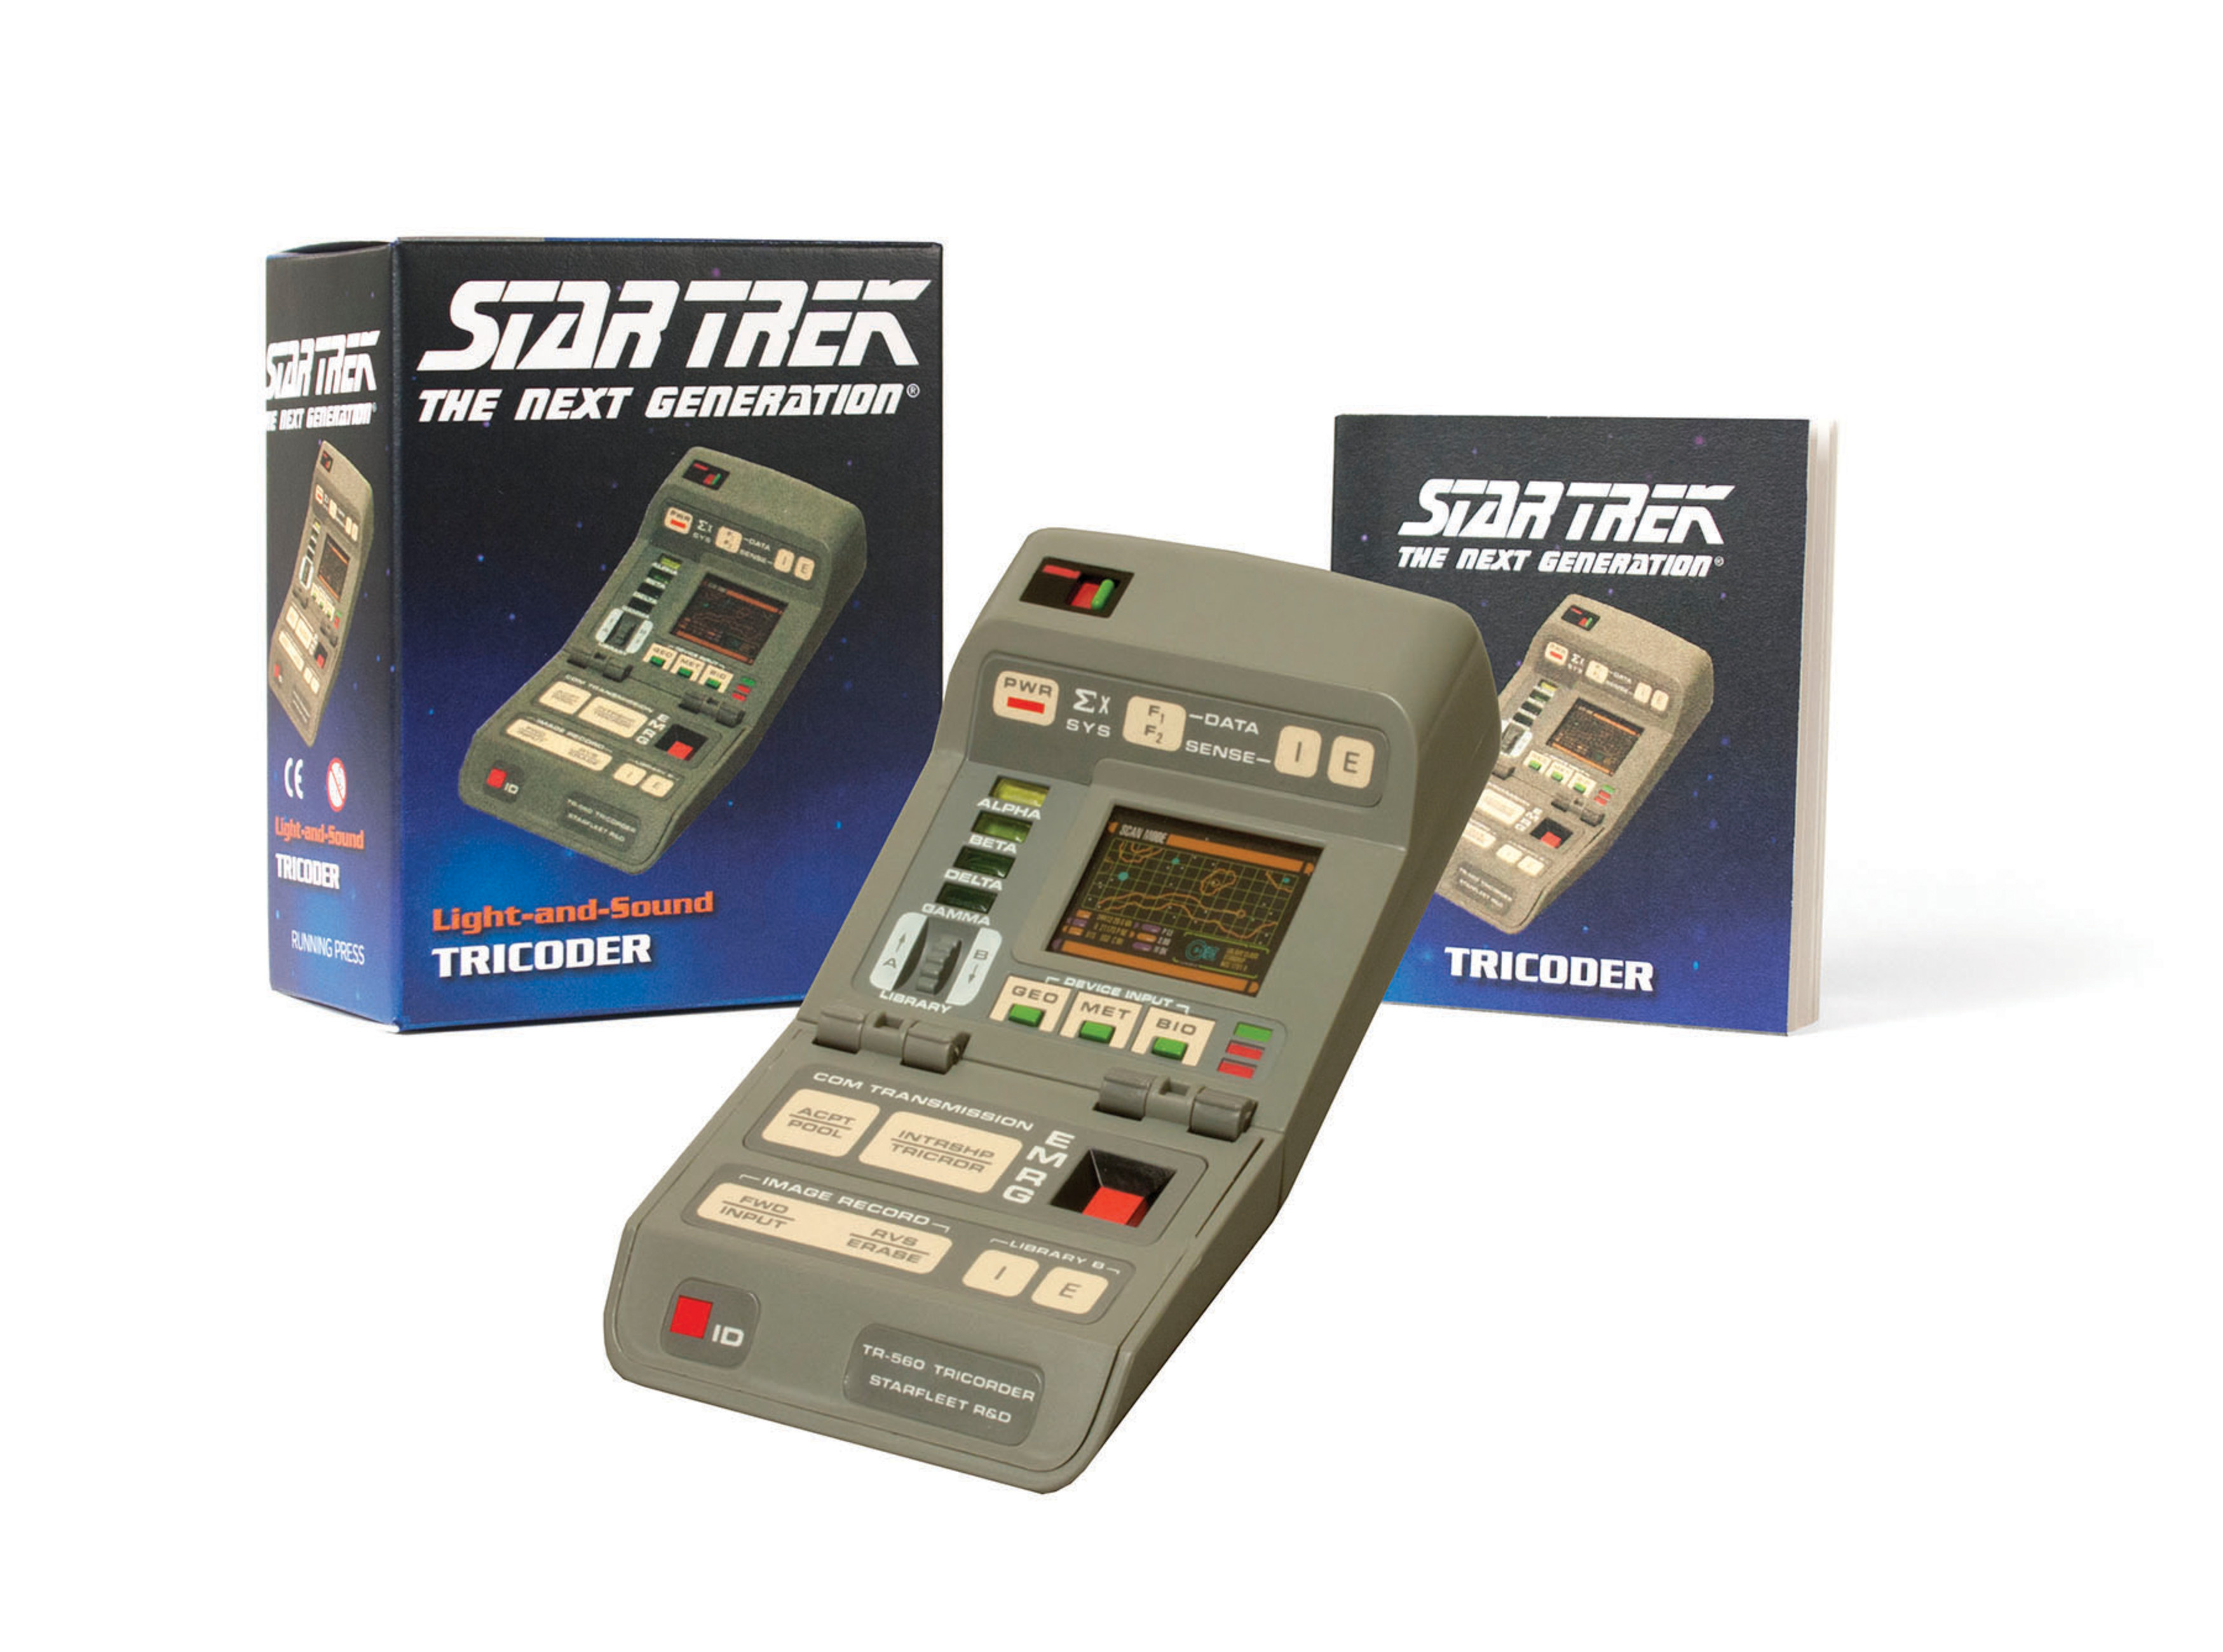 ... Star Trek: Light-and-Sound Tricorder · Download Image